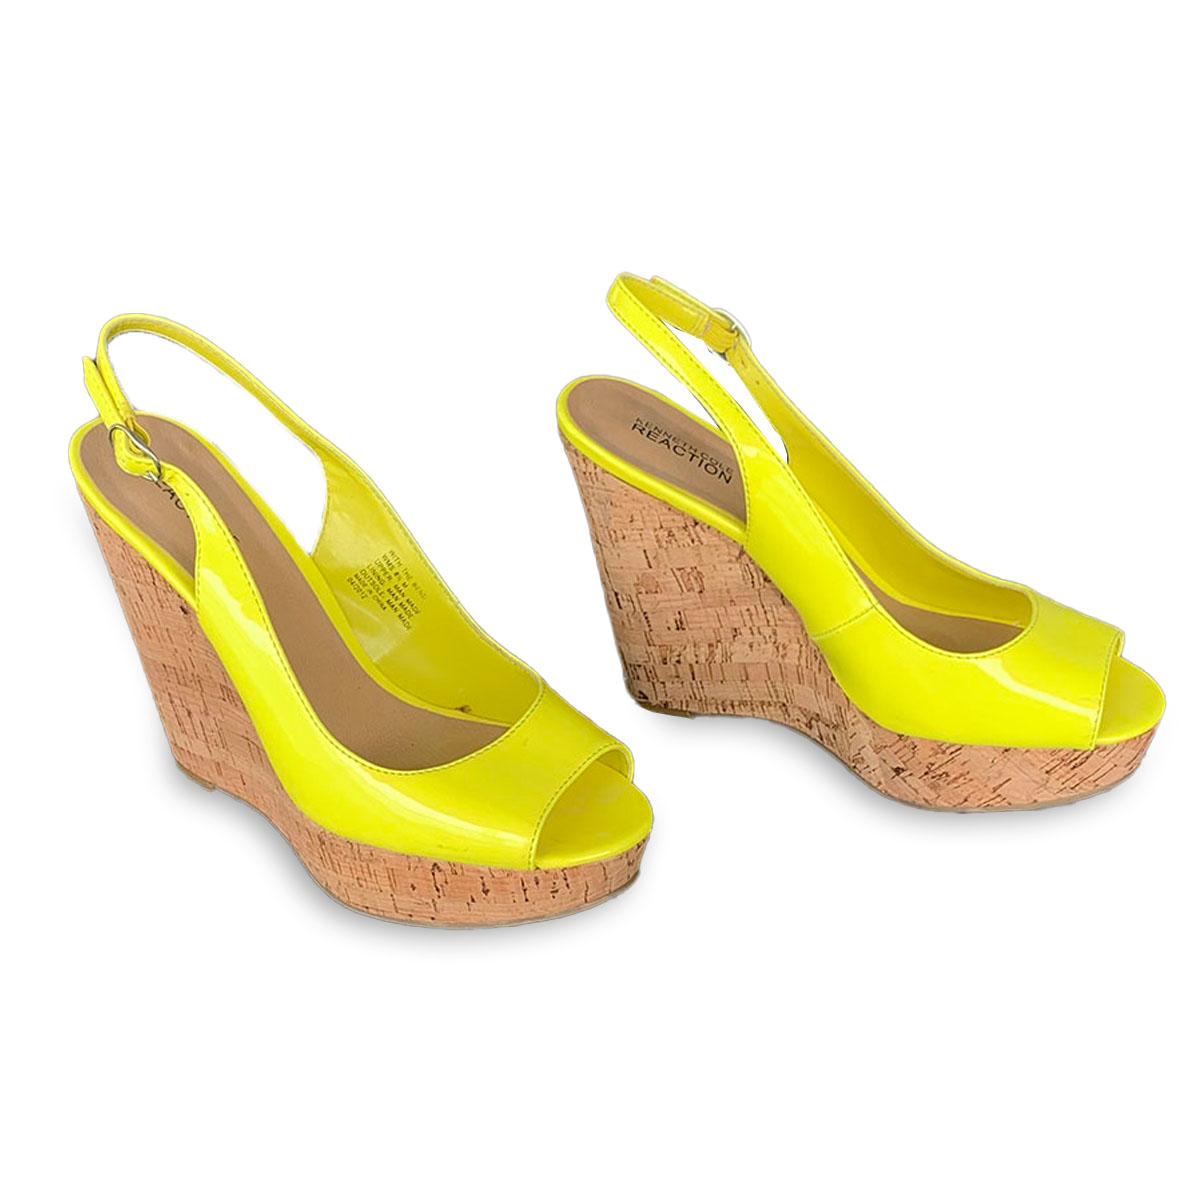 cork wedges, Kenneth Cole